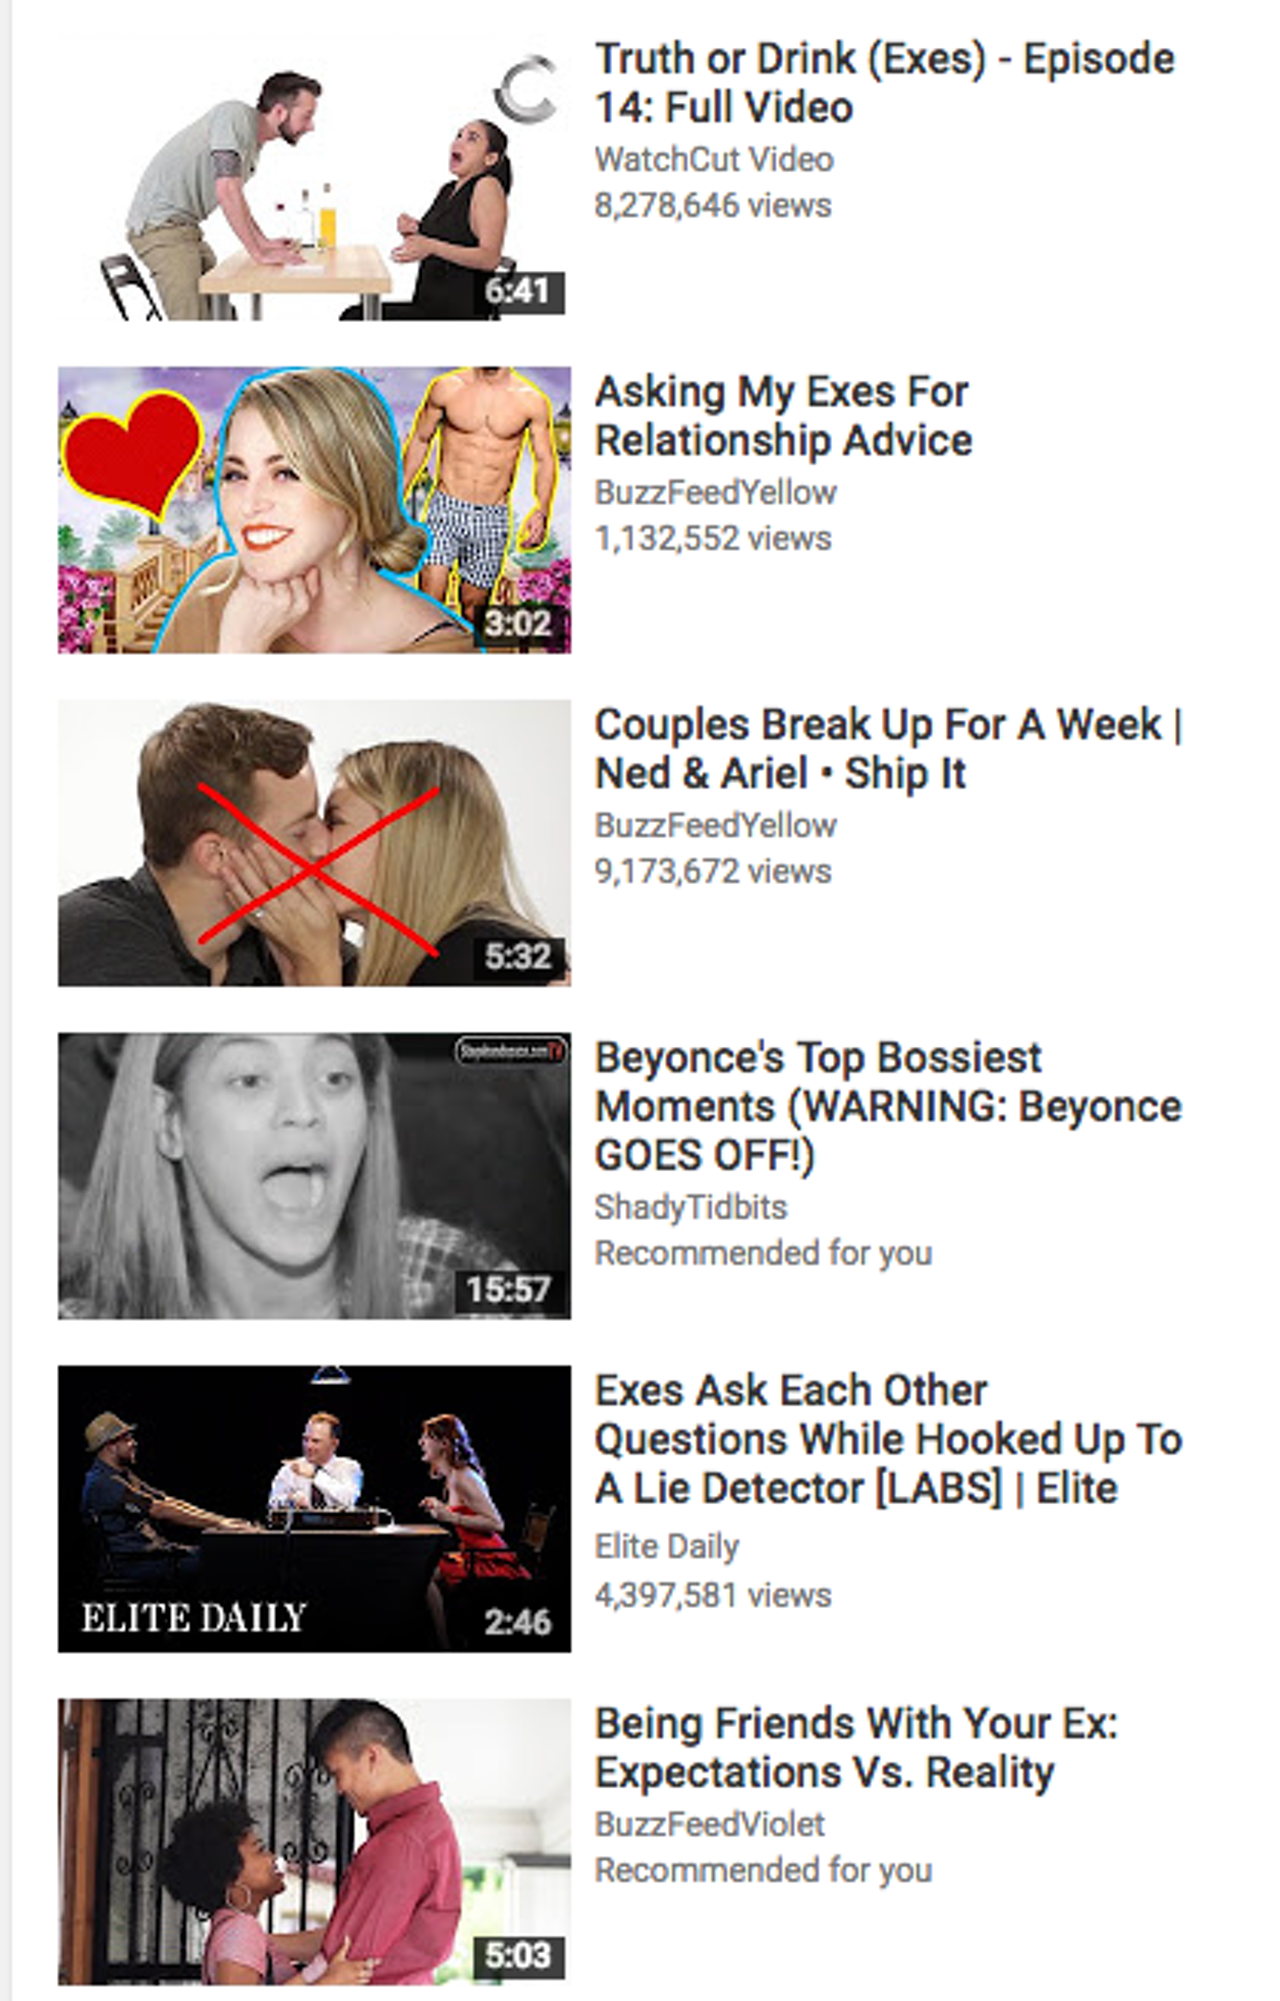 A world of ex-related content on YouTube (and Beyoncé)